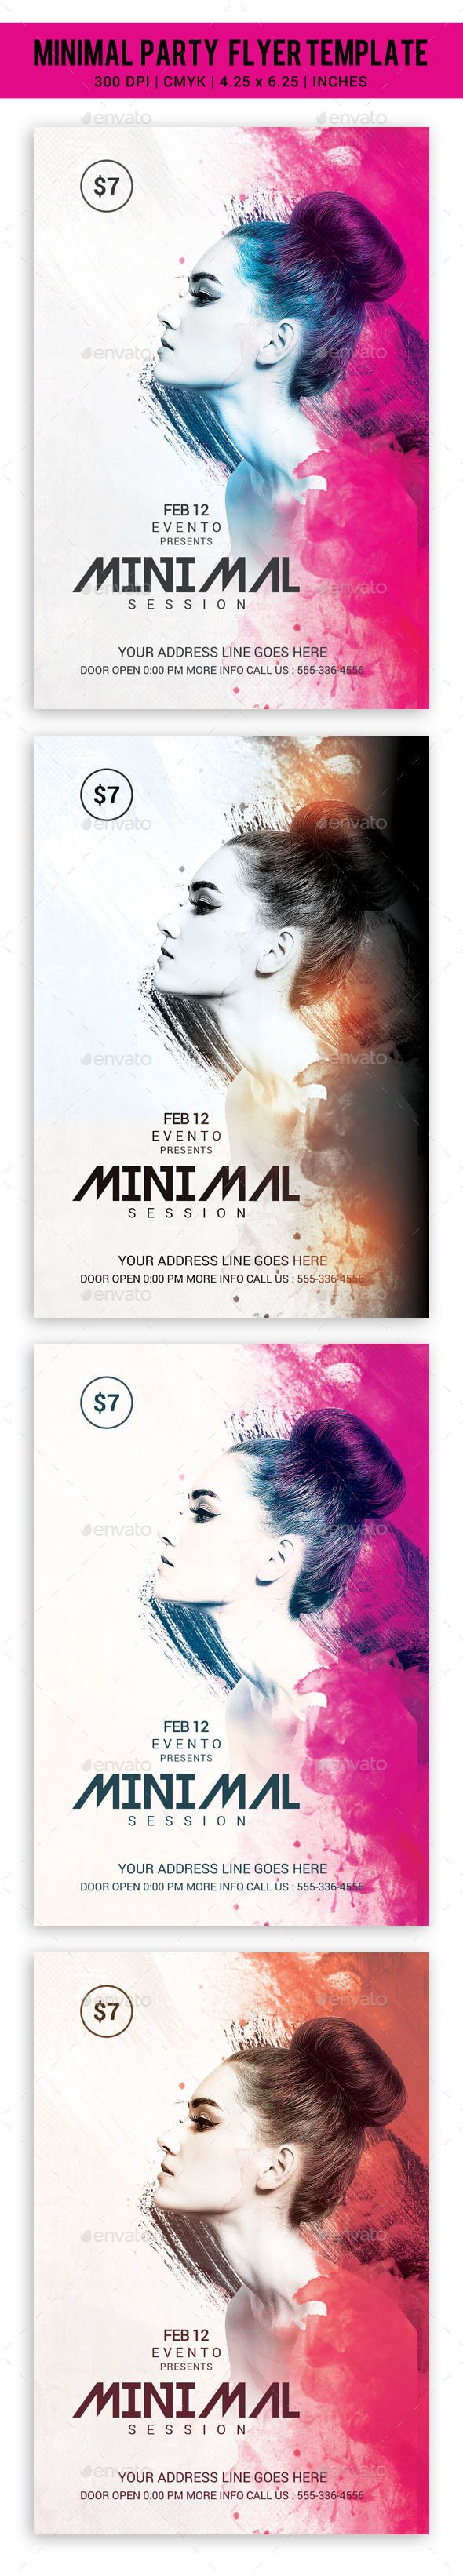 Poster design in photoshop 7 - Minimal Party Flyer Template